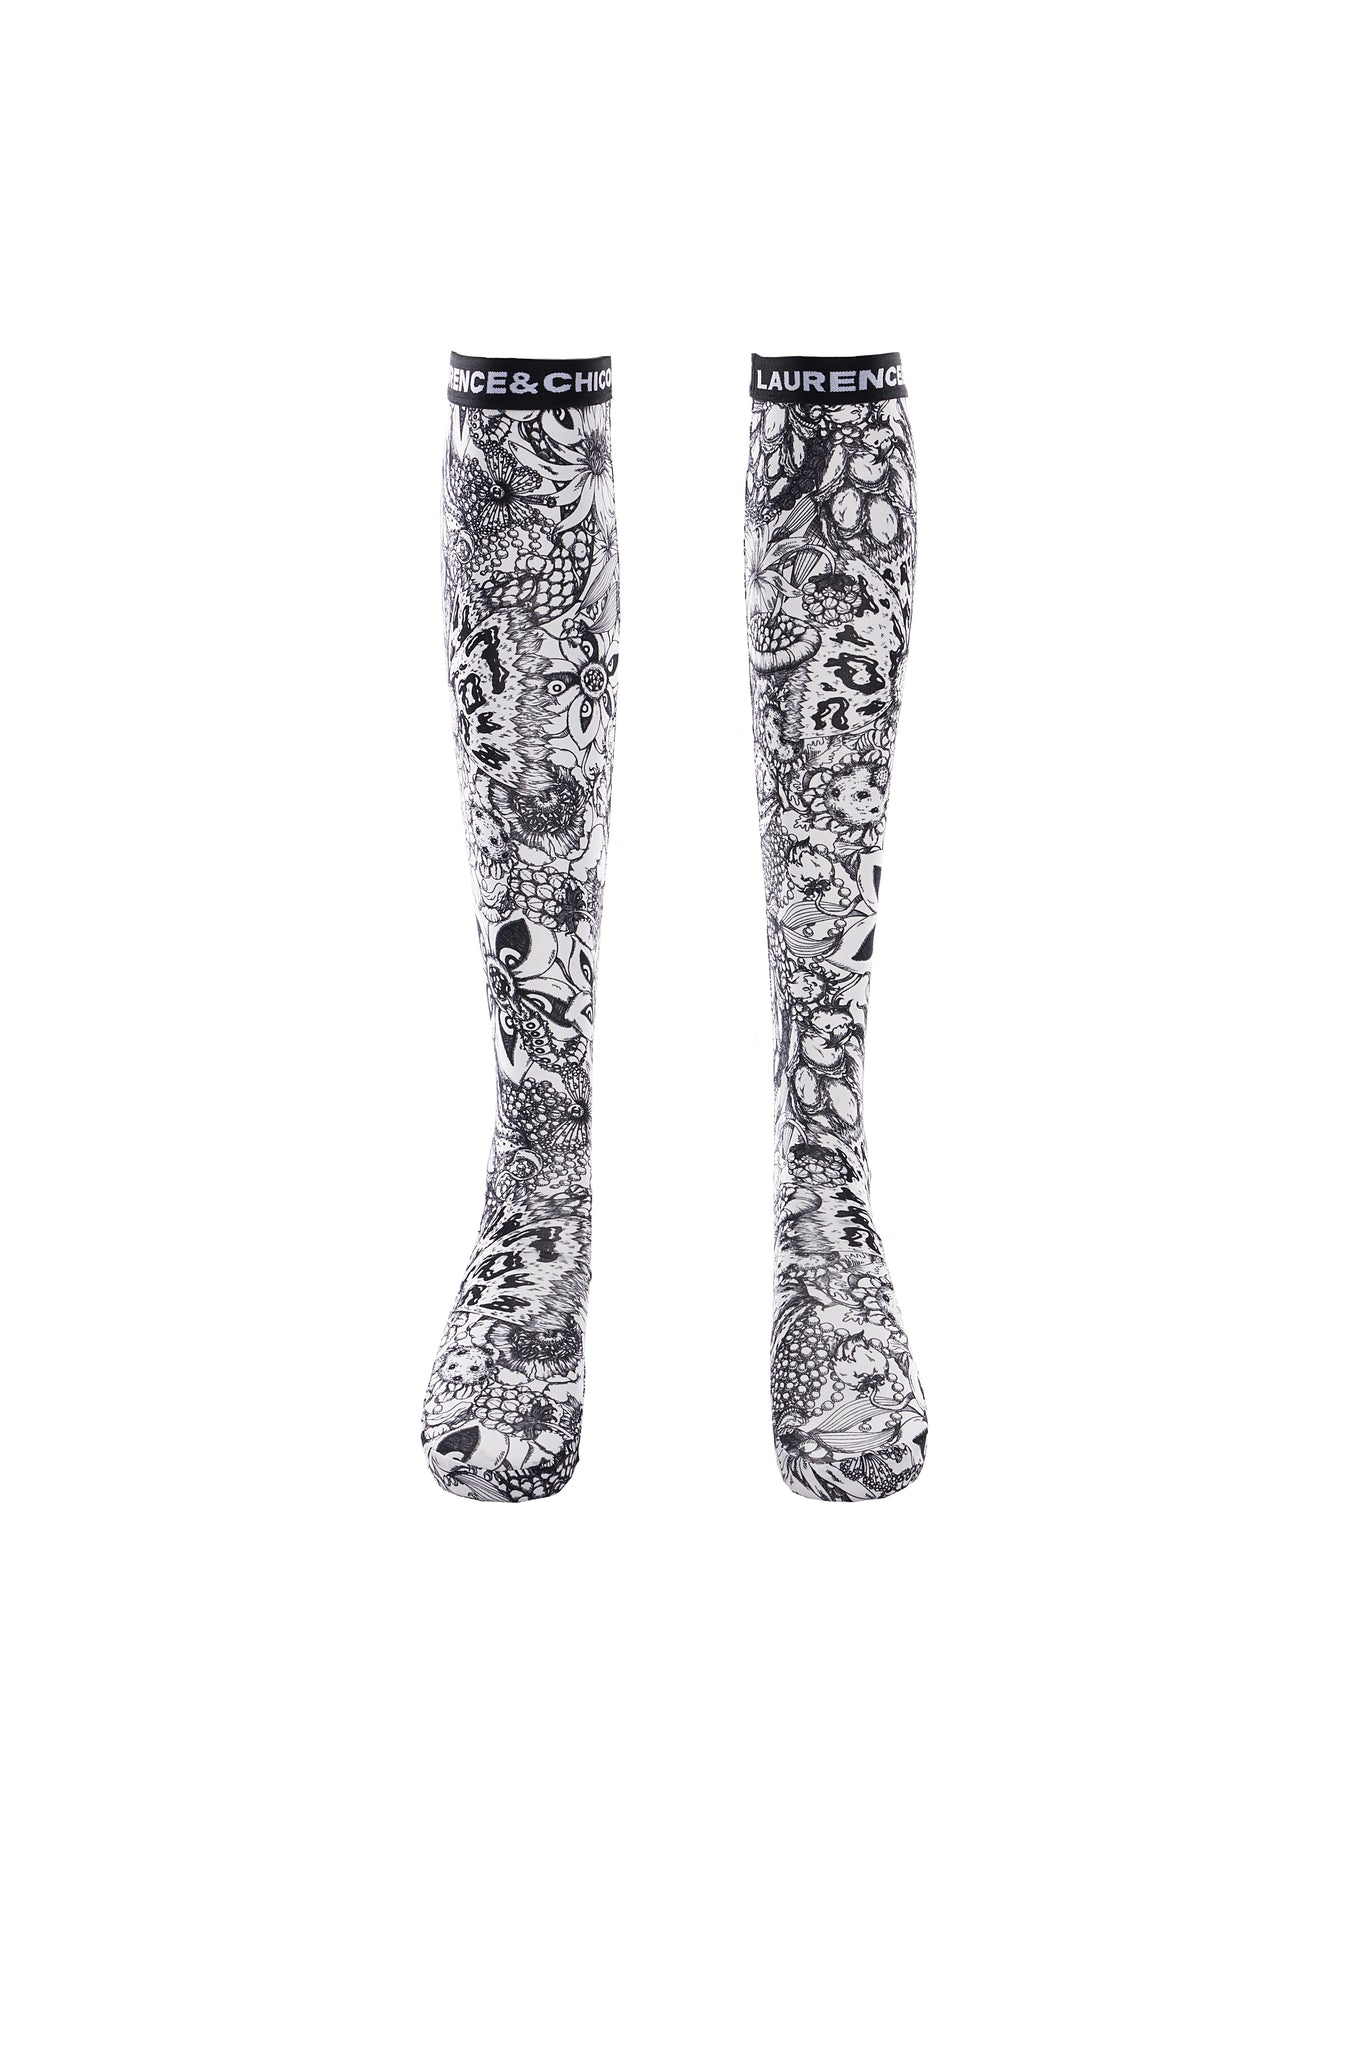 Van Dusen Garden Print Knee-High Socks, Black and White